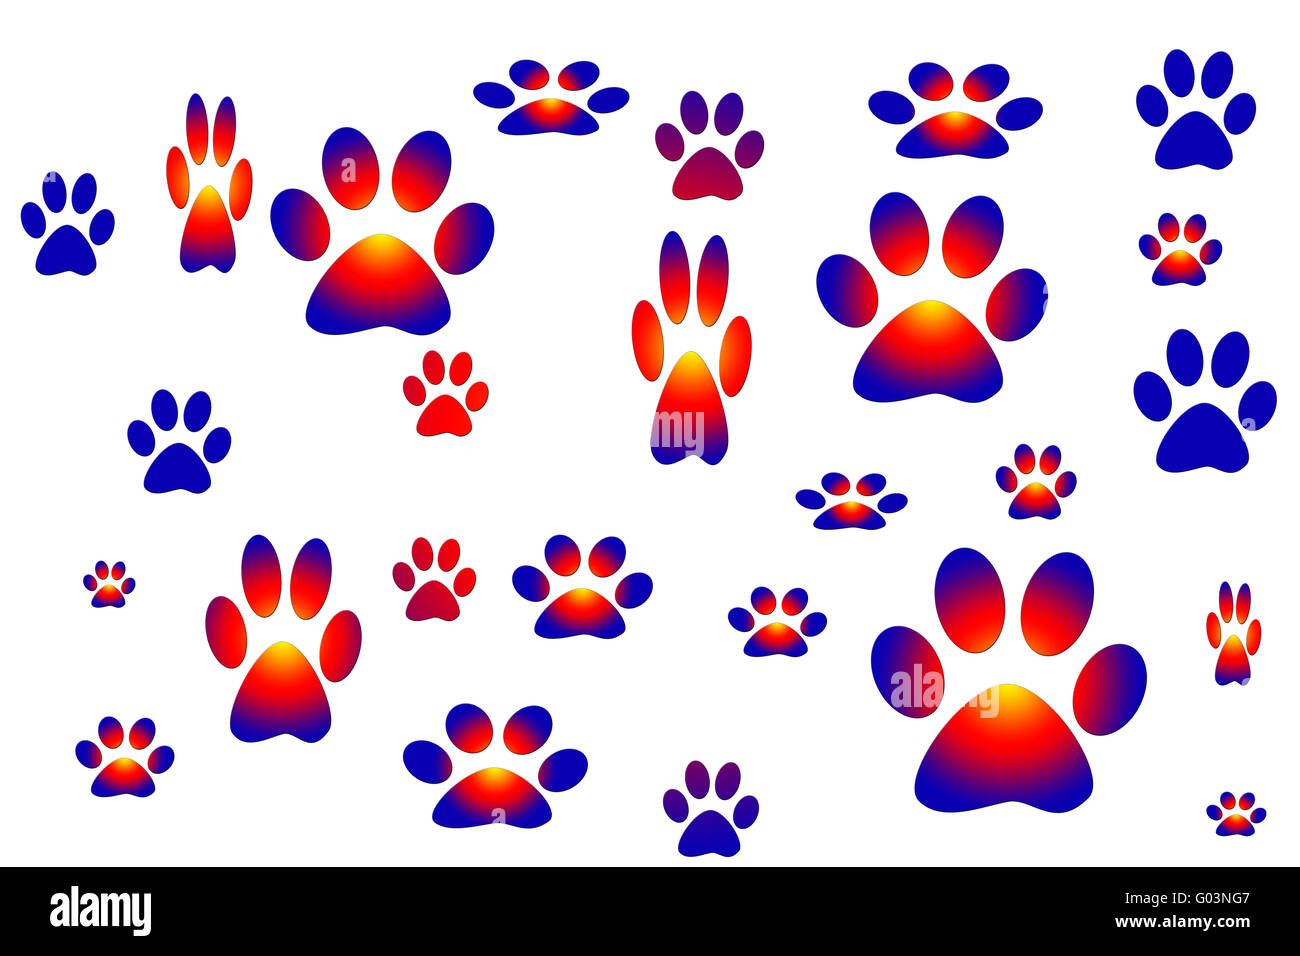 vector drawing representing animal tracks - Stock Image